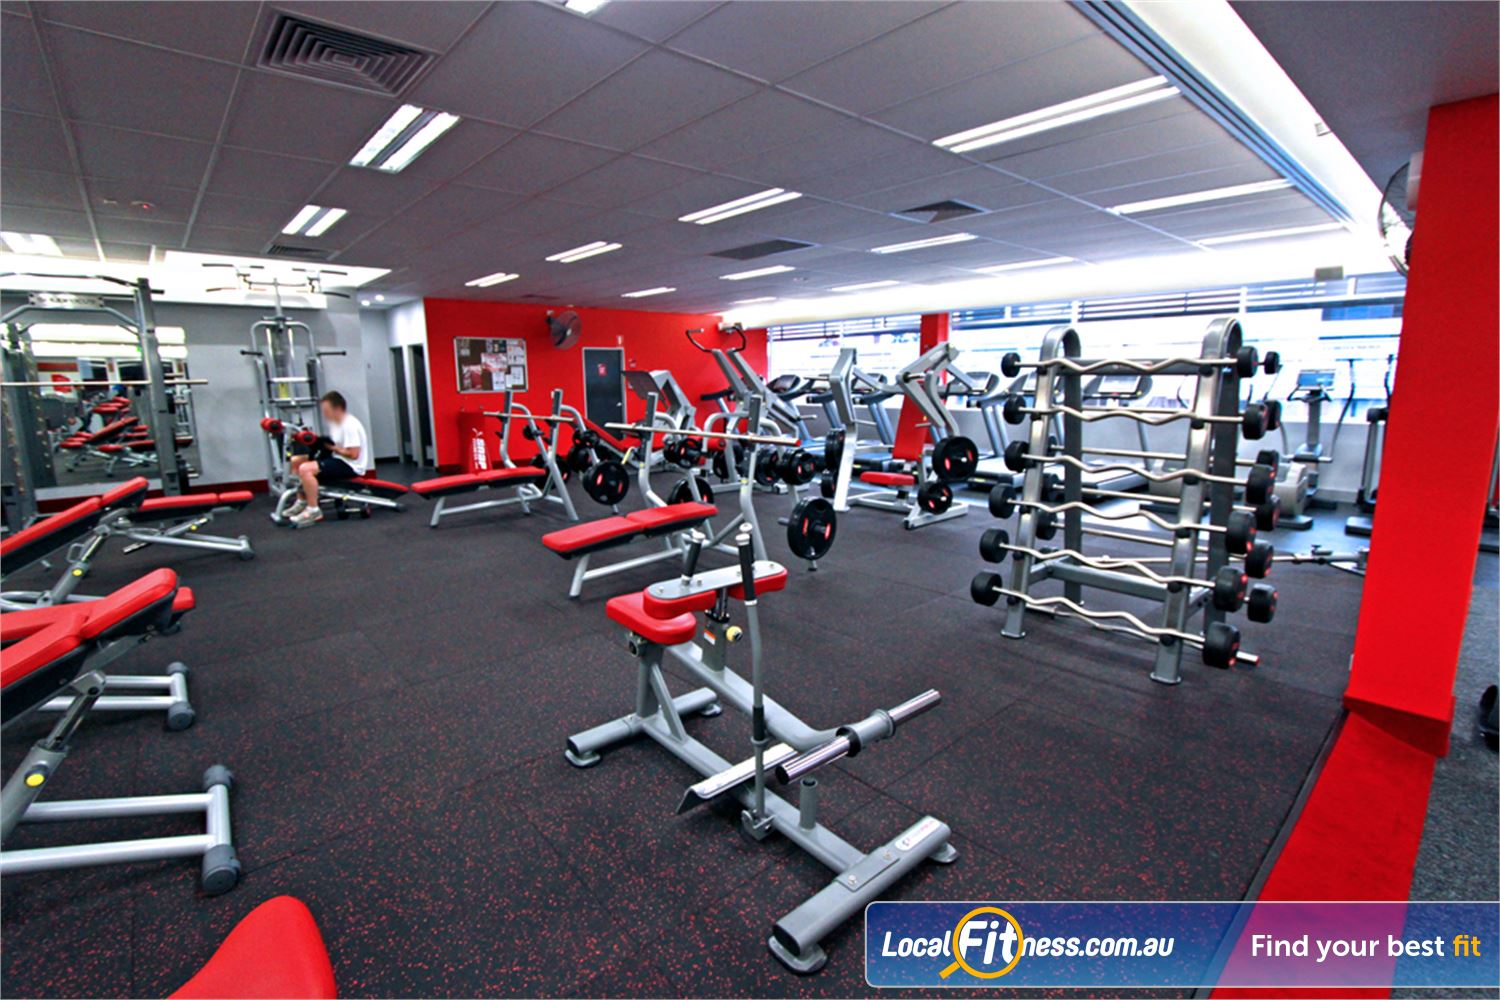 Snap Fitness Jindalee 24 hour Jindalee gym free-weight access.